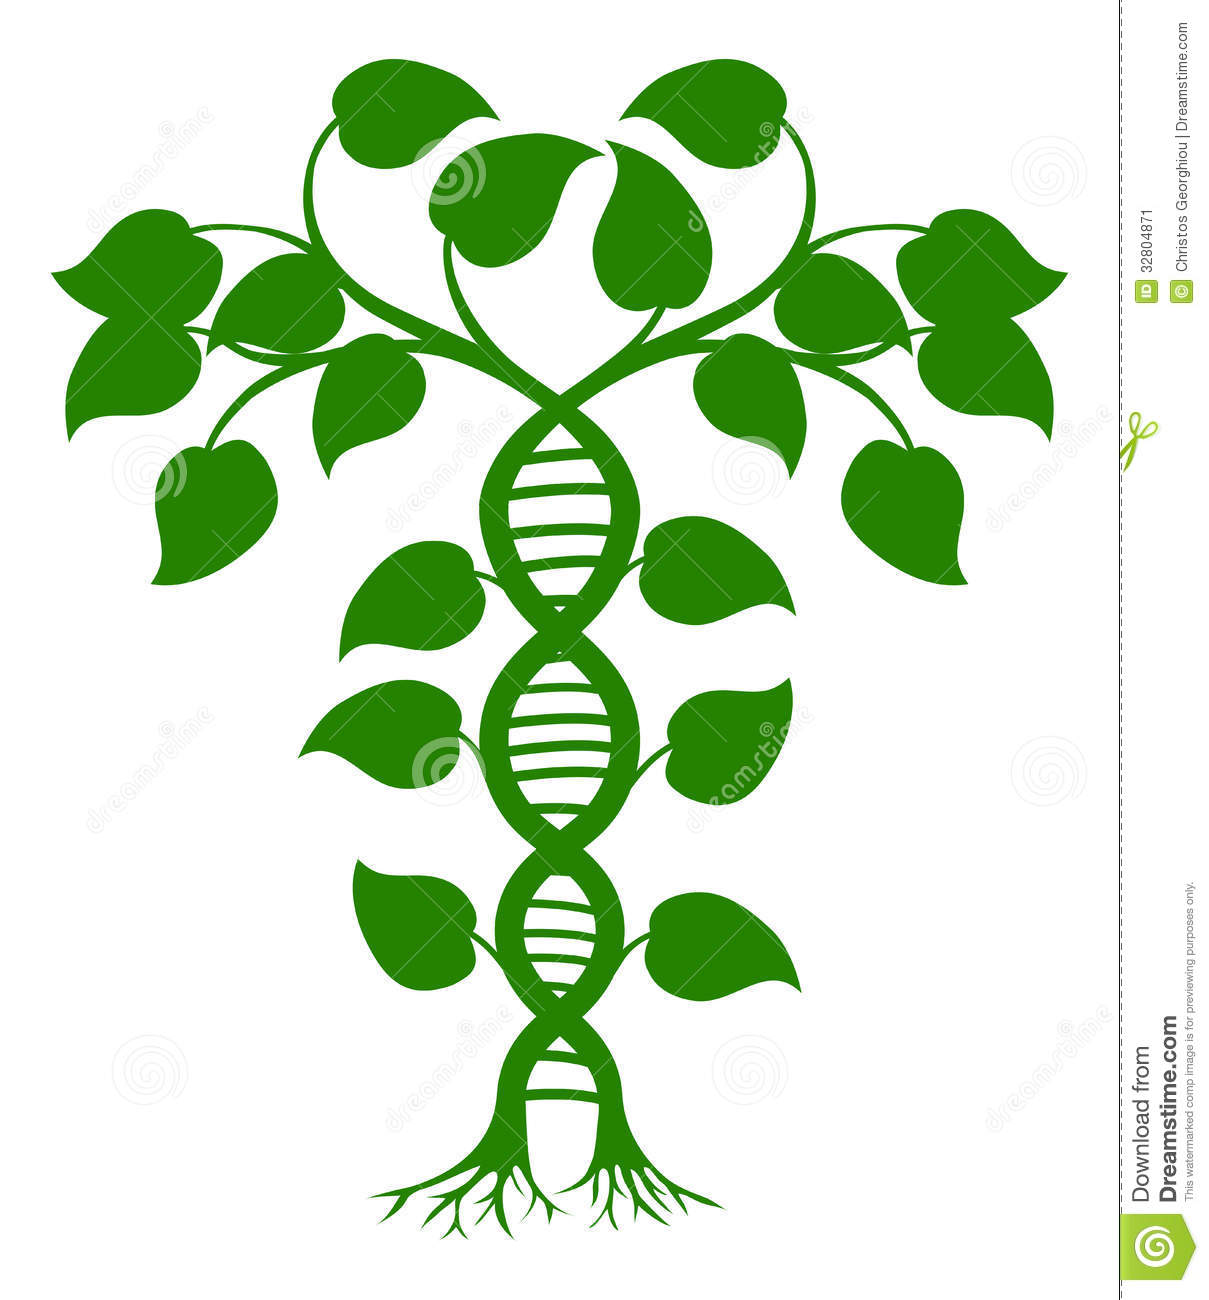 ... tree illustration with the trees or vines forming a DNA double helix